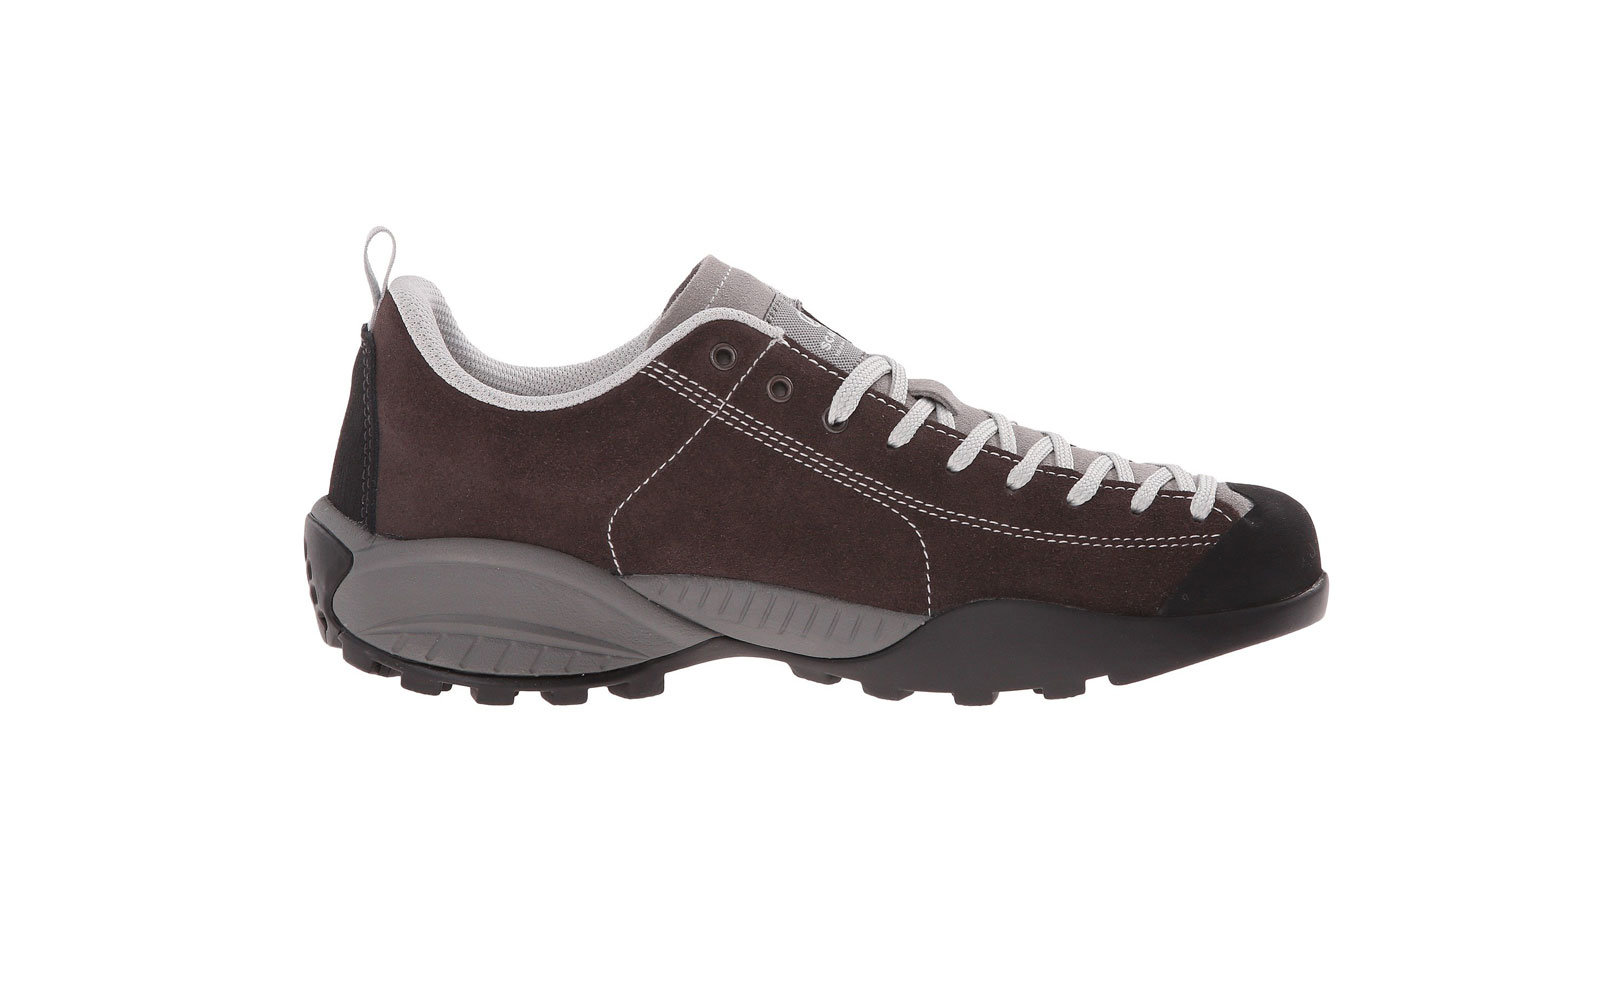 Comfortable Mens Walking Shoes Made for Travel  Travel